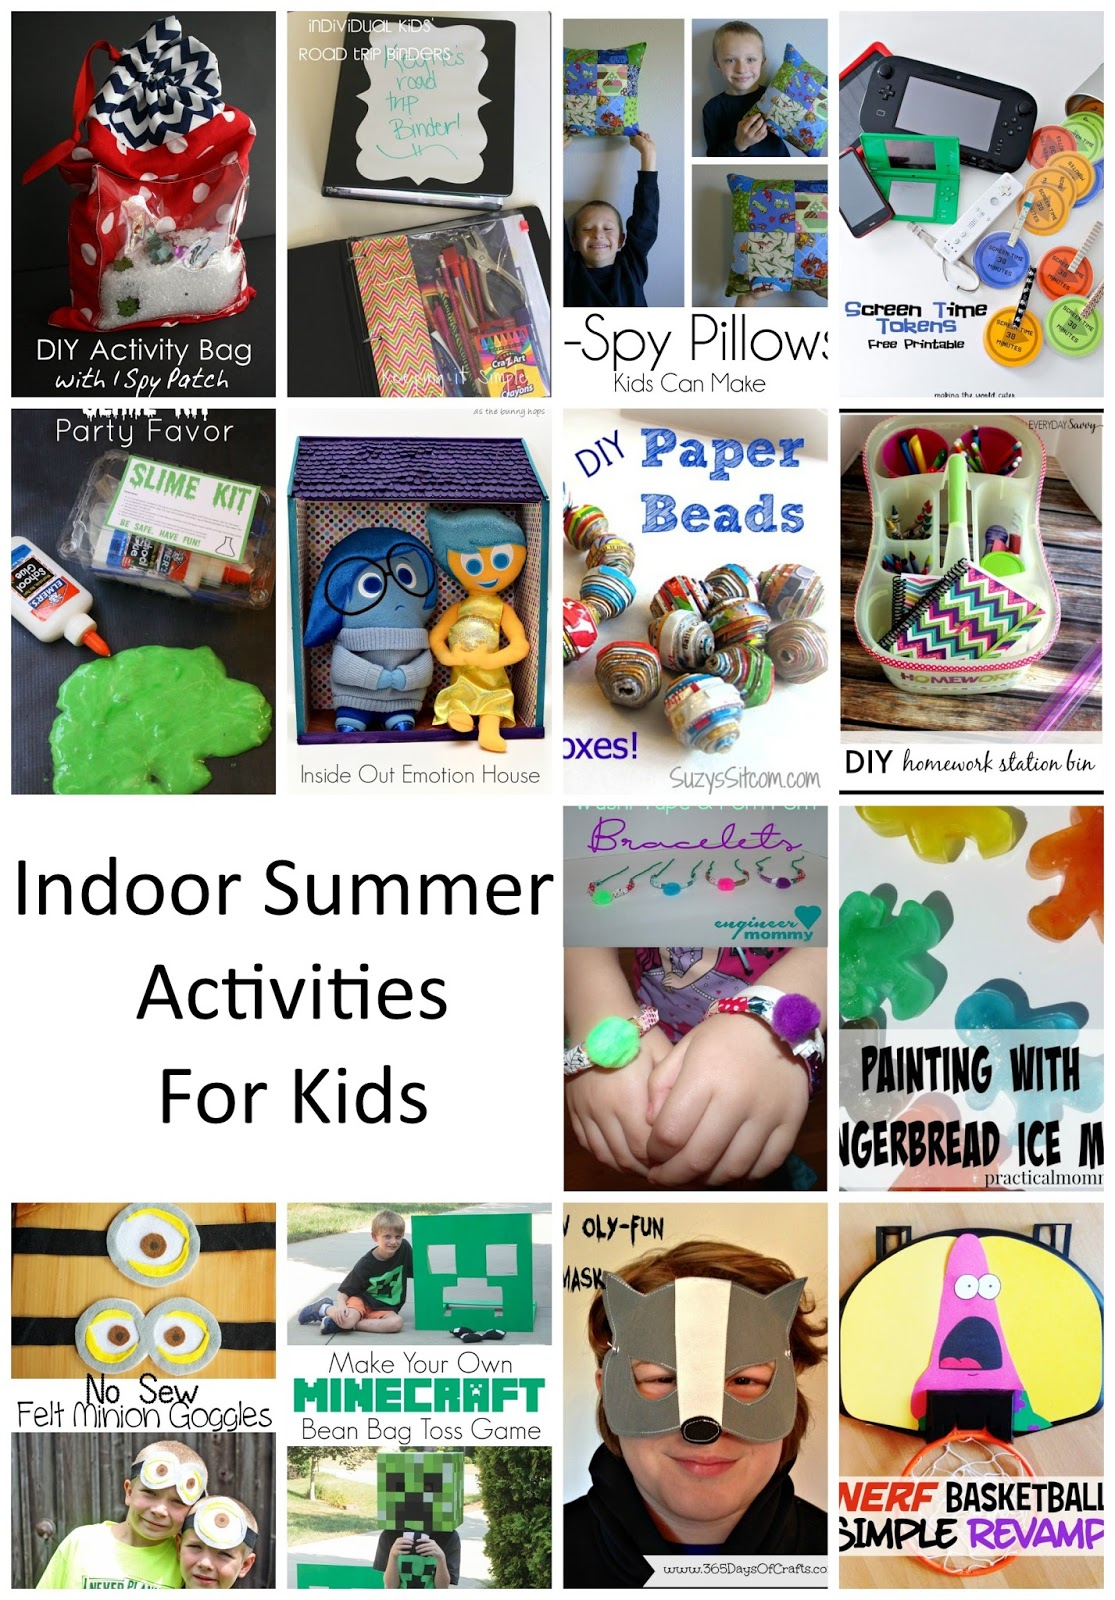 Indoor Summer Activities, for when it's too hot to play outside.